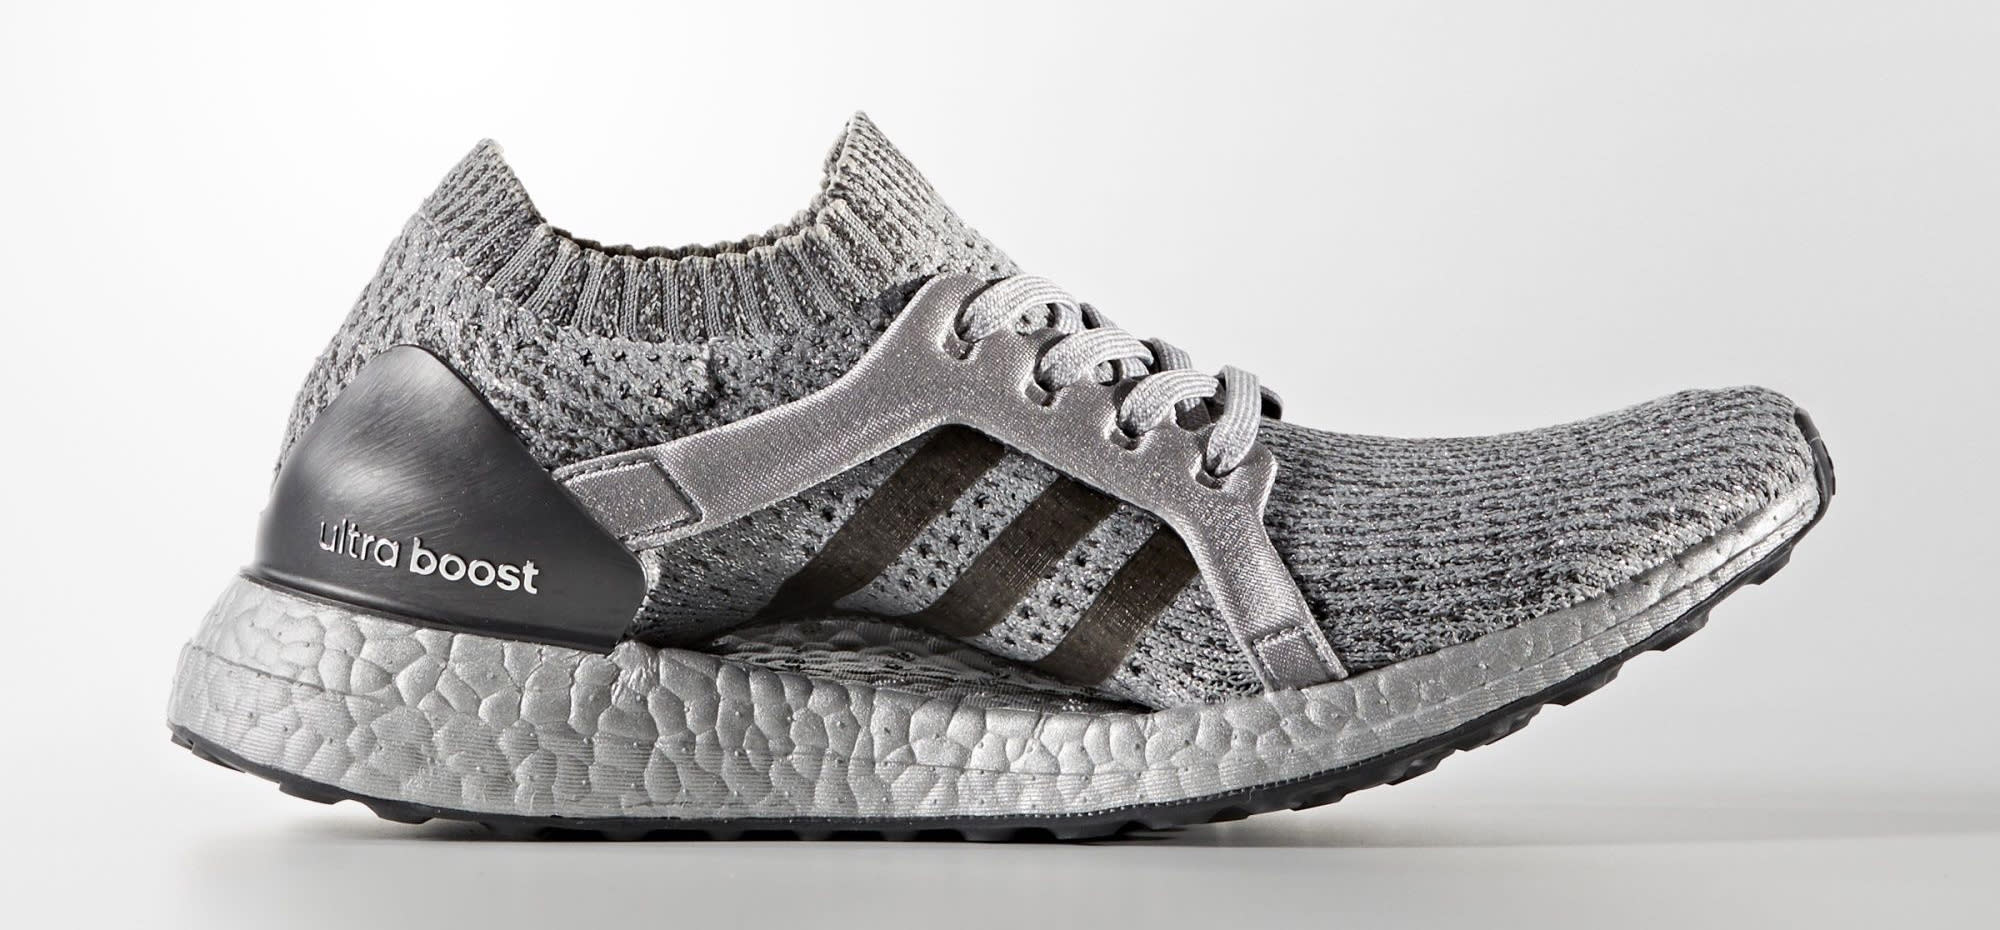 Adidas Ultra Boost Silver Pack | Sole Collector